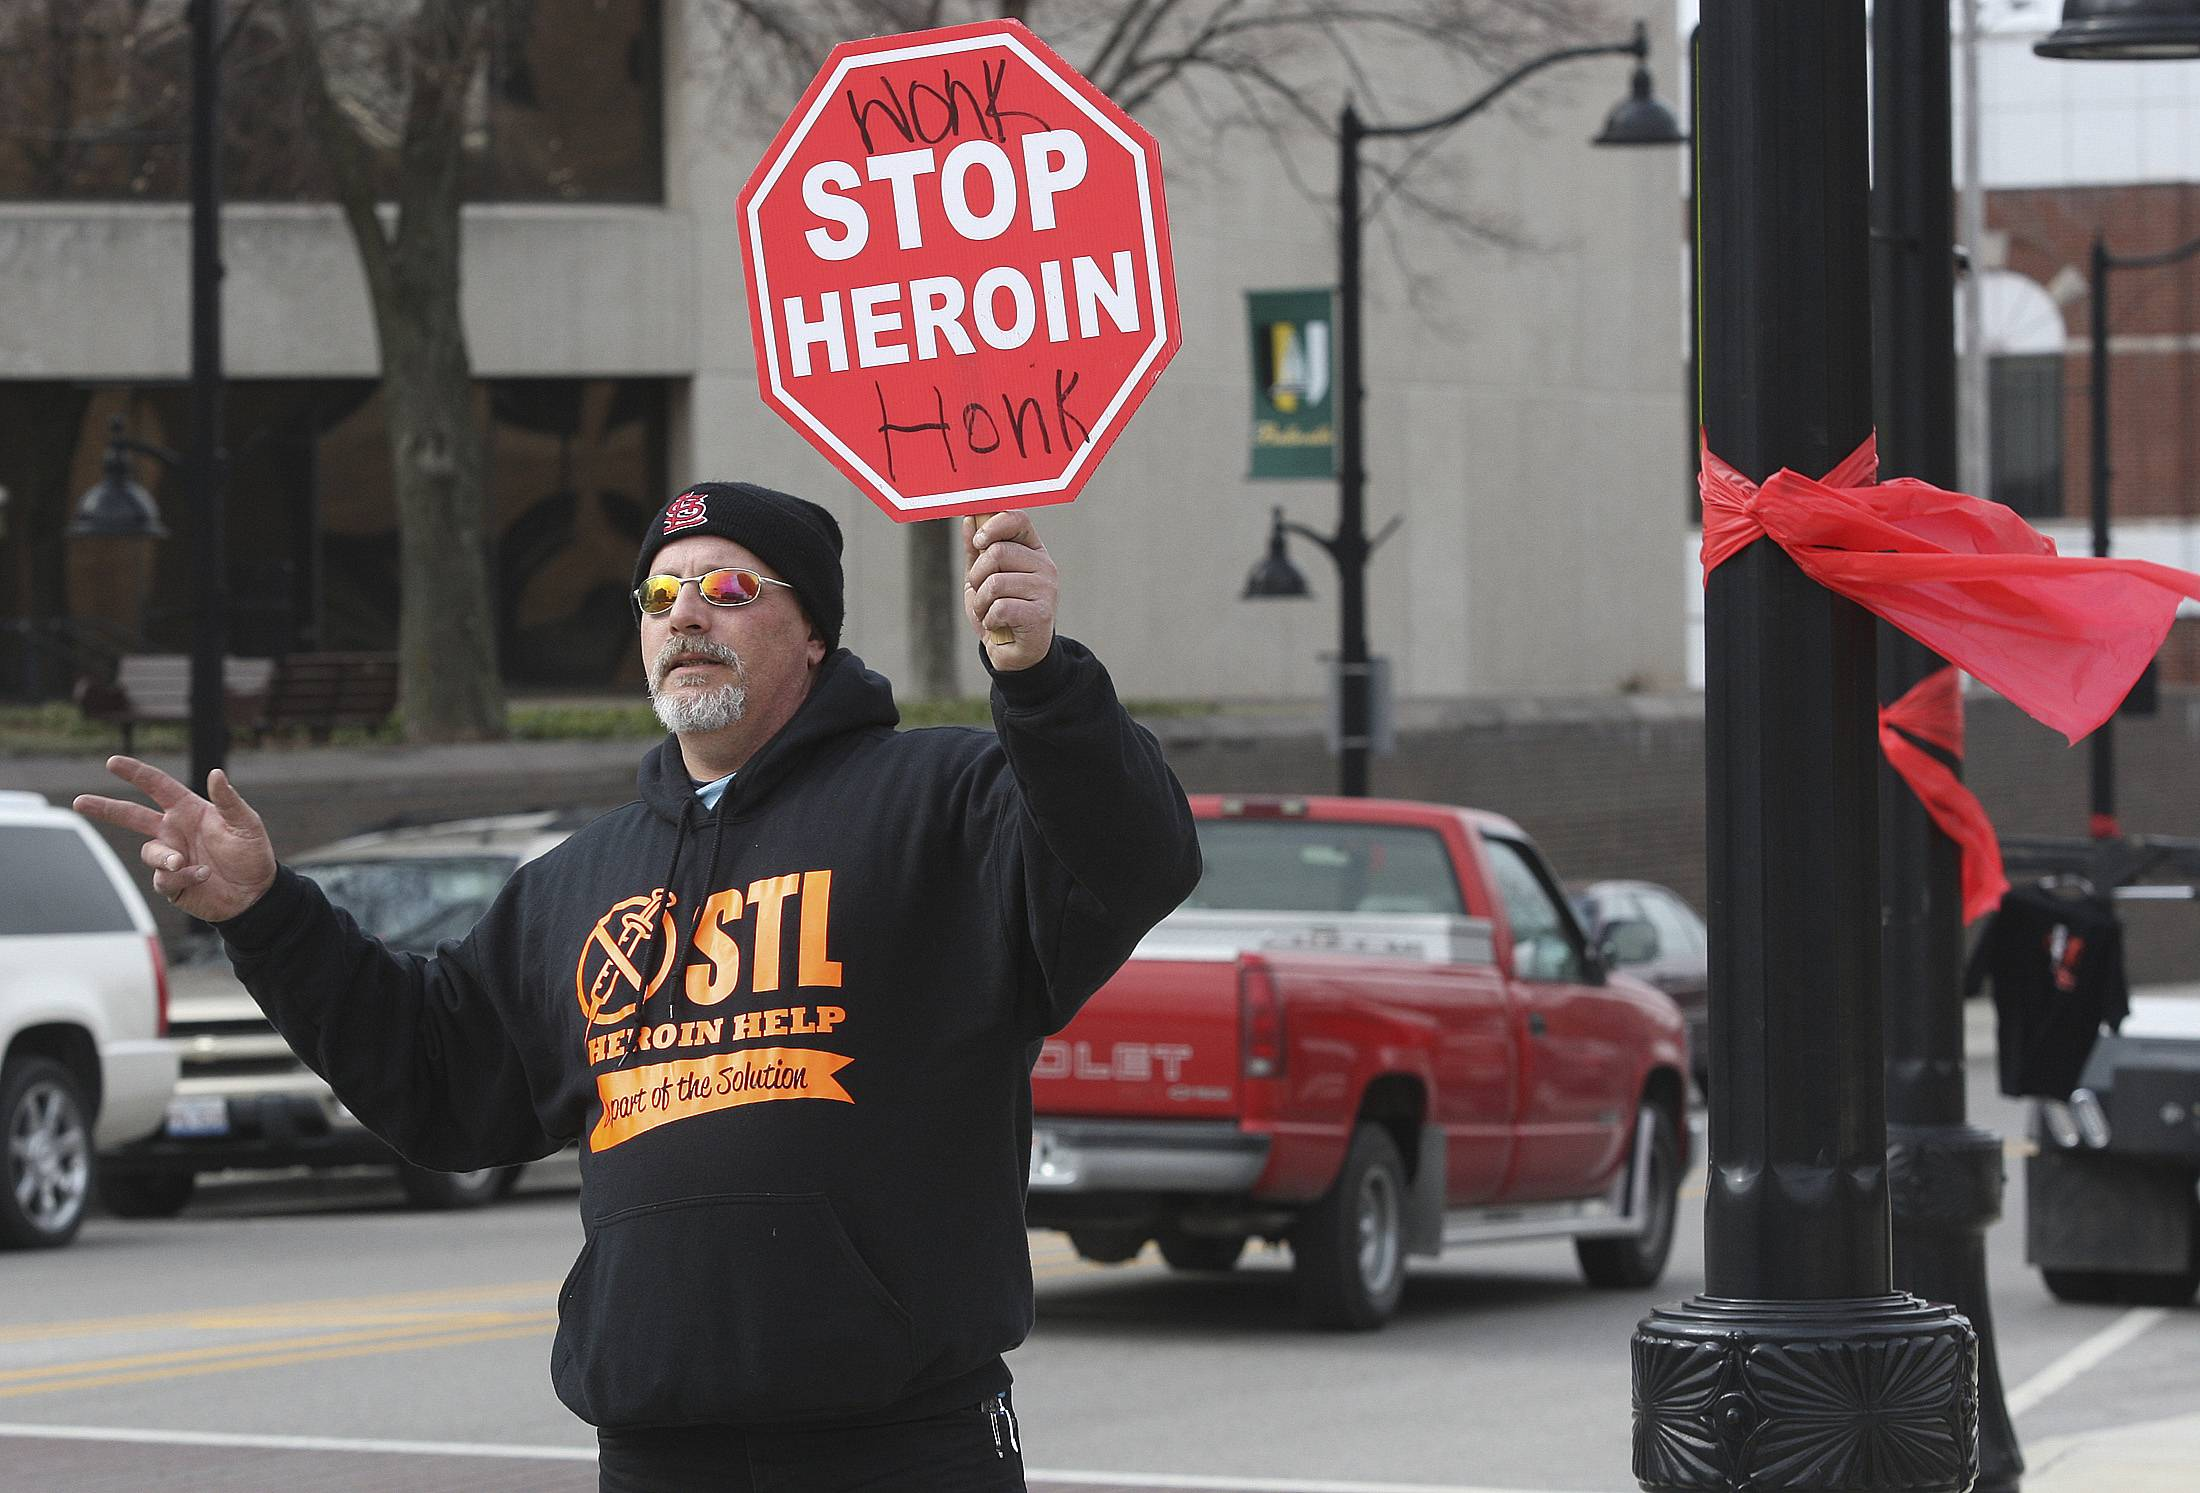 Phil Wahby, of St. Louis, an outreach coordinator with the STLHeroinHelp organization, waves to motorists during an anti-heroin rally in Belleville, Ill. Coroners from the Chicago area to St. Louis' Illinois suburbs say heroin overdose deaths have spiked in recent years, given the relative cheapness, purity, potency and broad availability.